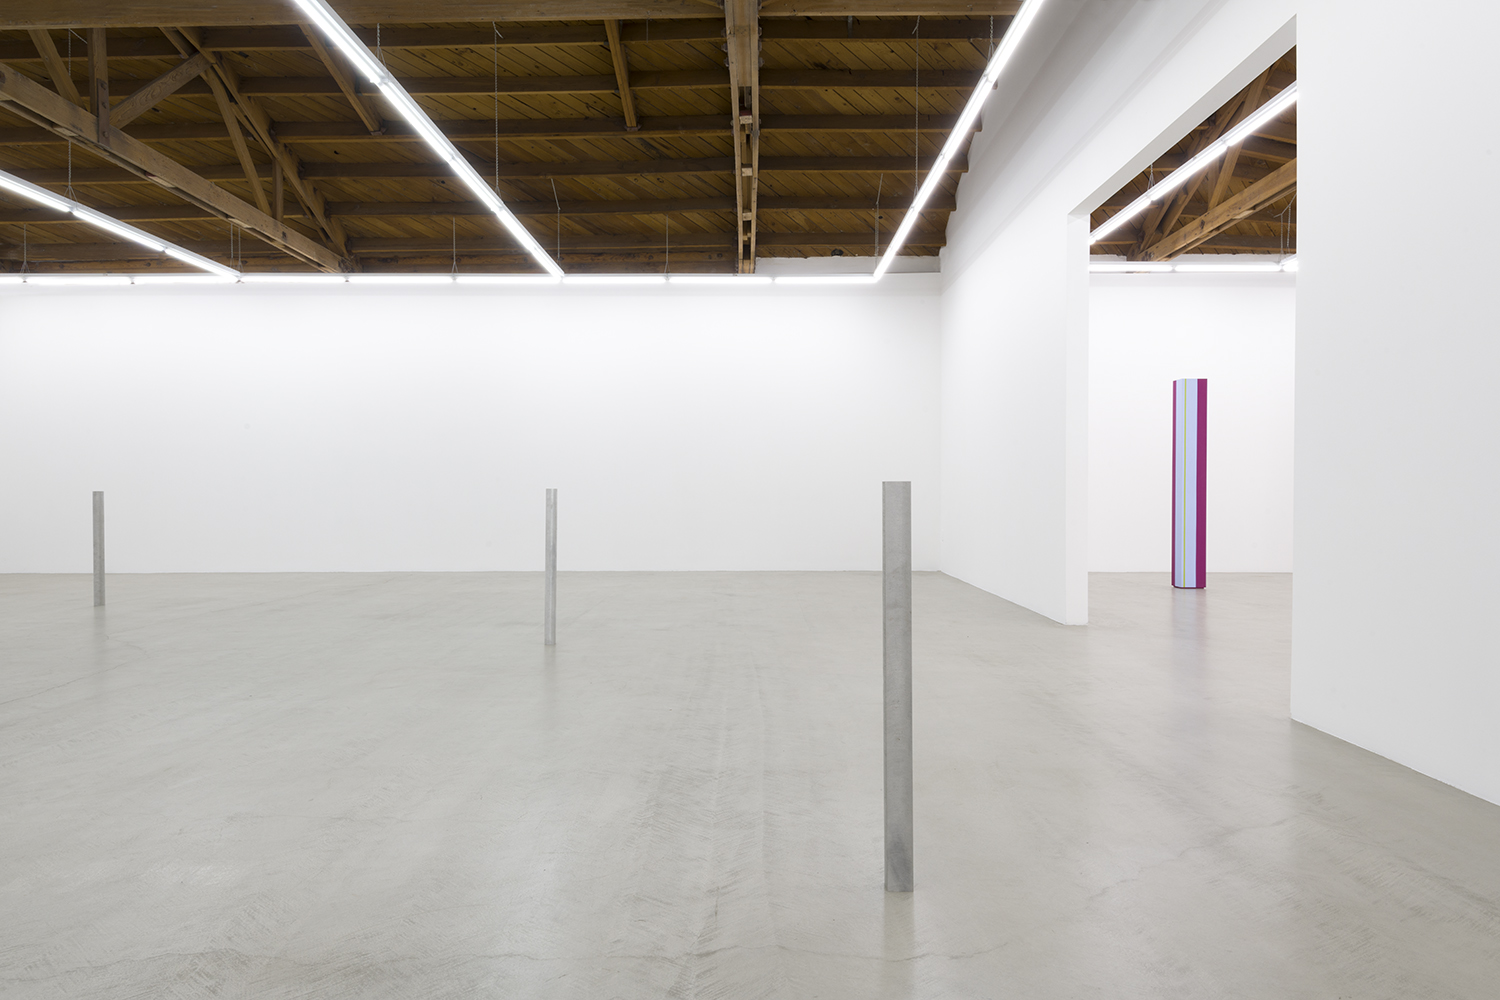 Installation image of three aluminum and steel cast sculptures standing erect methodically placed within the gallery along with an Anne Truitt sculpture on the right side